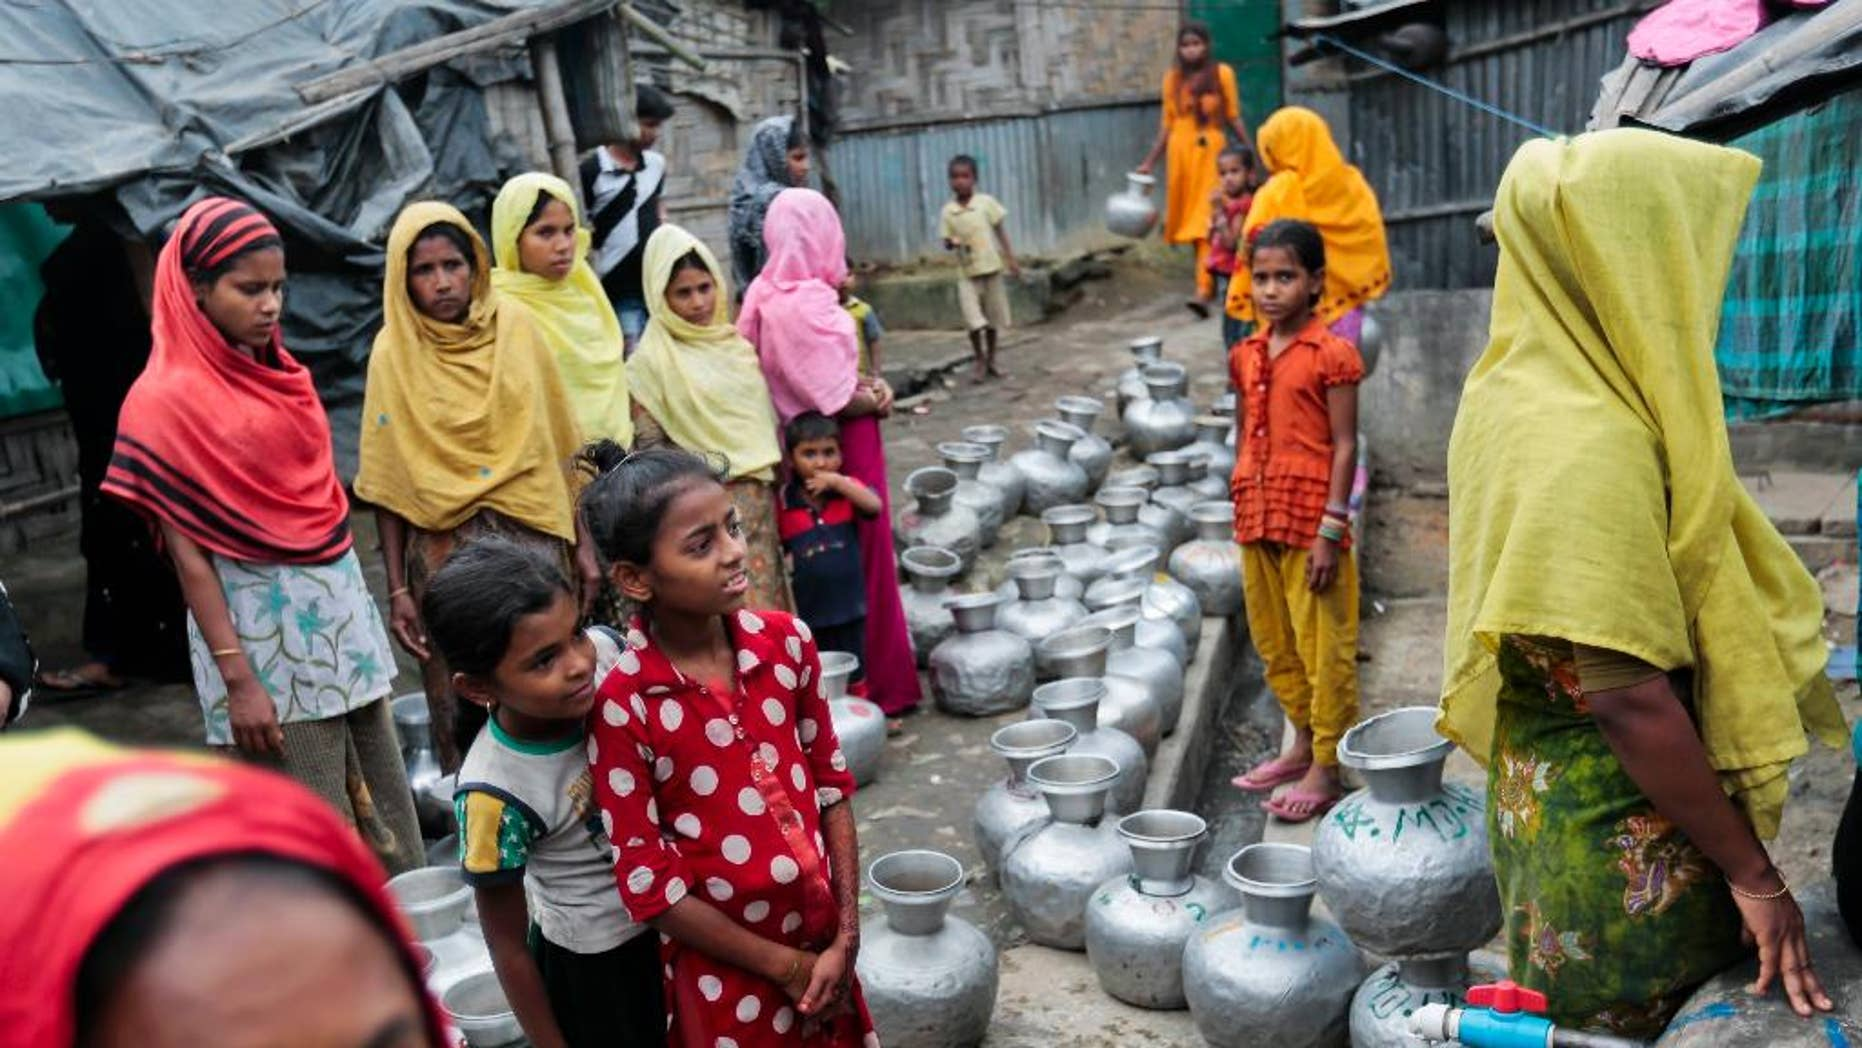 """FILE - In this Dec. 3, 2016, file photo, Rohingya women and children wait in a queue to collect water at the Leda camp, an unregistered camp for Rohingya in Teknaf, near Cox's Bazar, a southern coastal district about, 296 kilometers (183 miles) south of Dhaka, Bangladesh. Abuses appear to be """"normal and allowed"""" in Myanmar's security crackdown in response to an armed uprising among its Rohingya Muslims, a senior U.S. official said in an interview, casting a pall over one of President Barack Obama's legacy foreign policy achievements. (AP Photo, File)"""